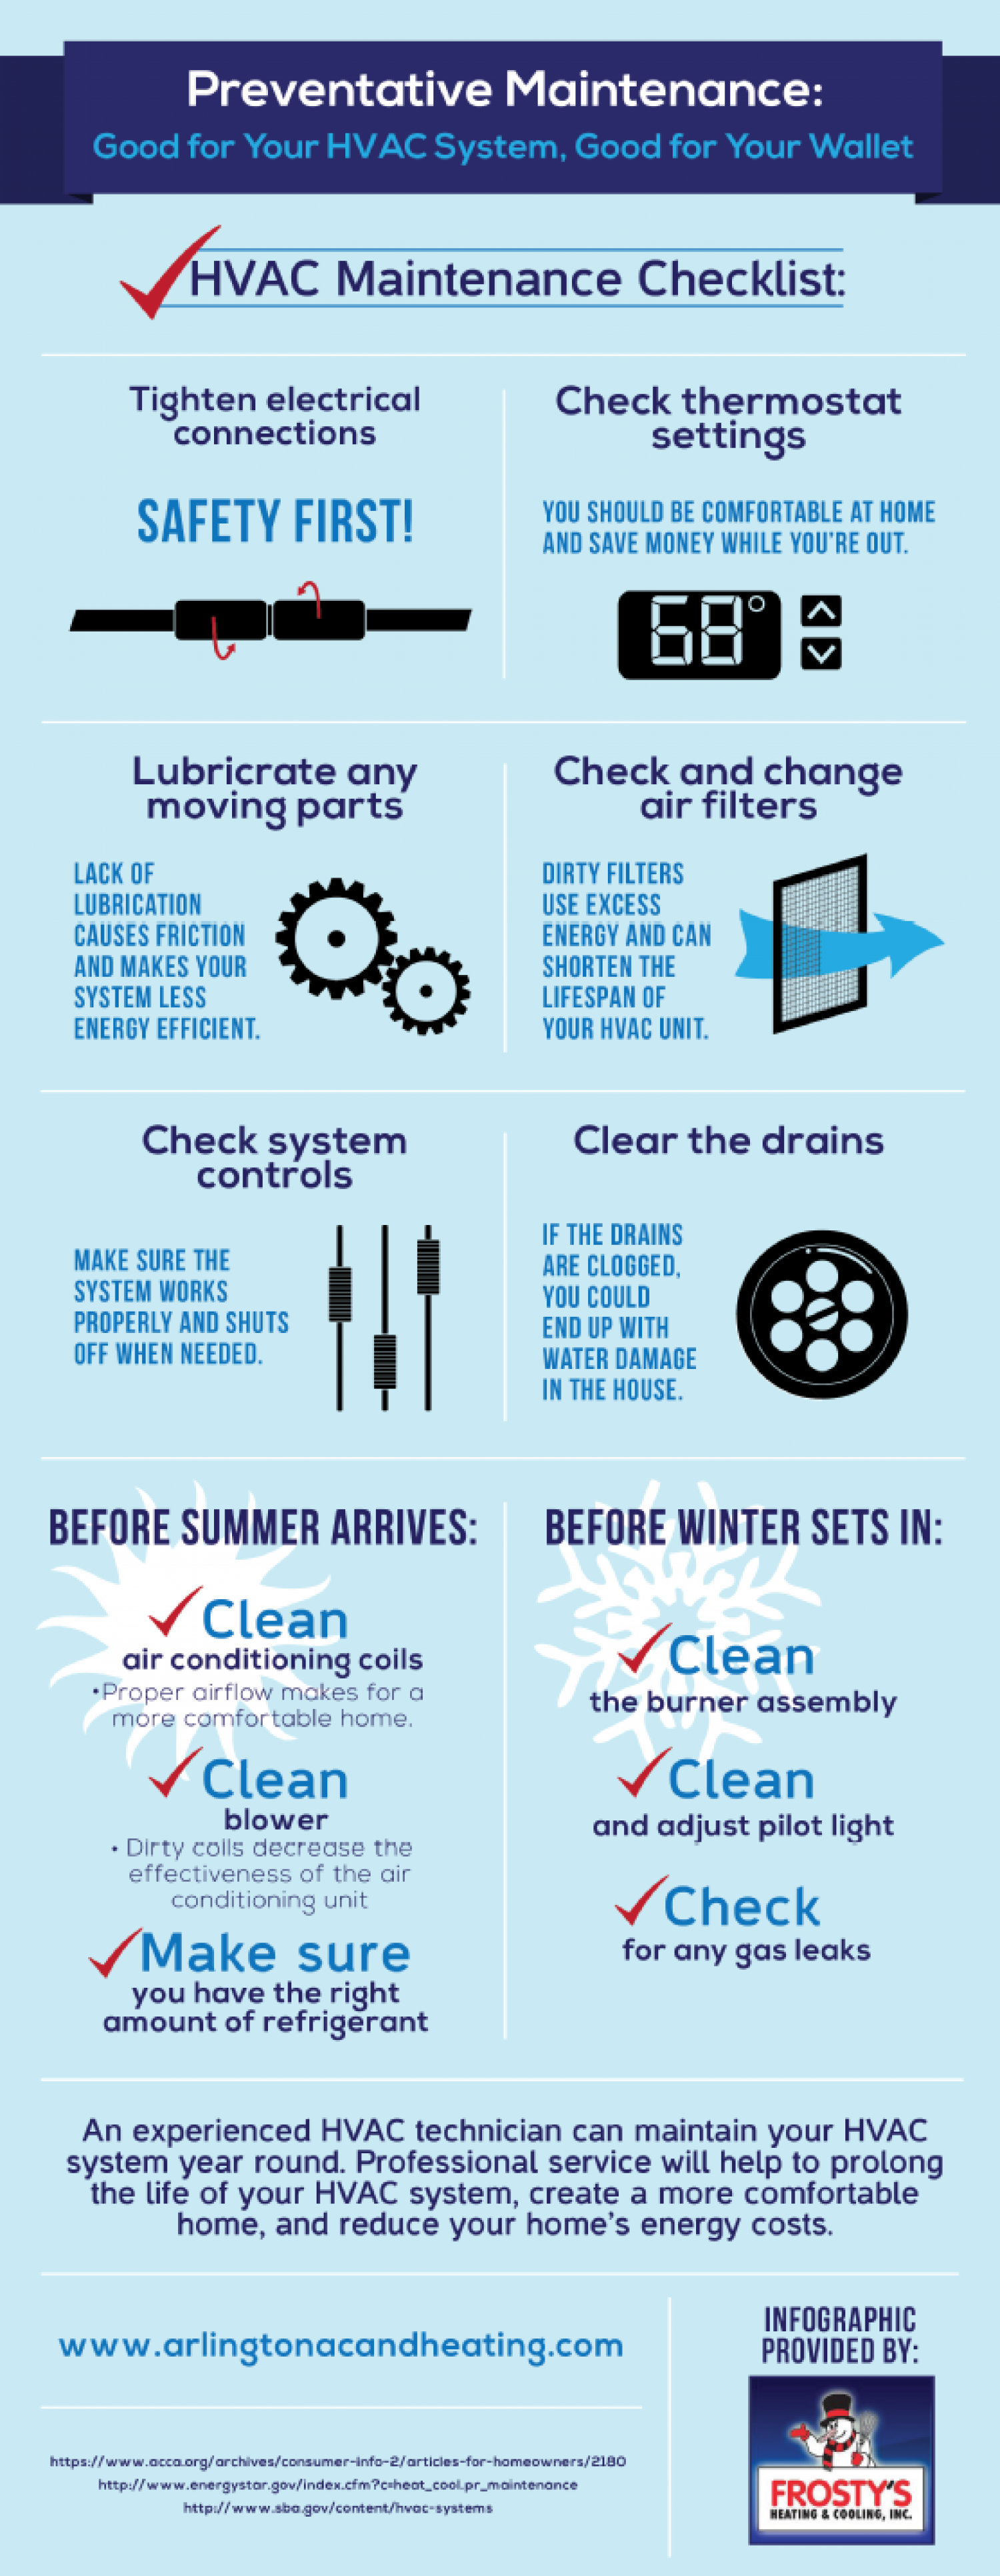 Preventive Maintenance: Good for Your HVAC System, Good for Your Wallet Infographic